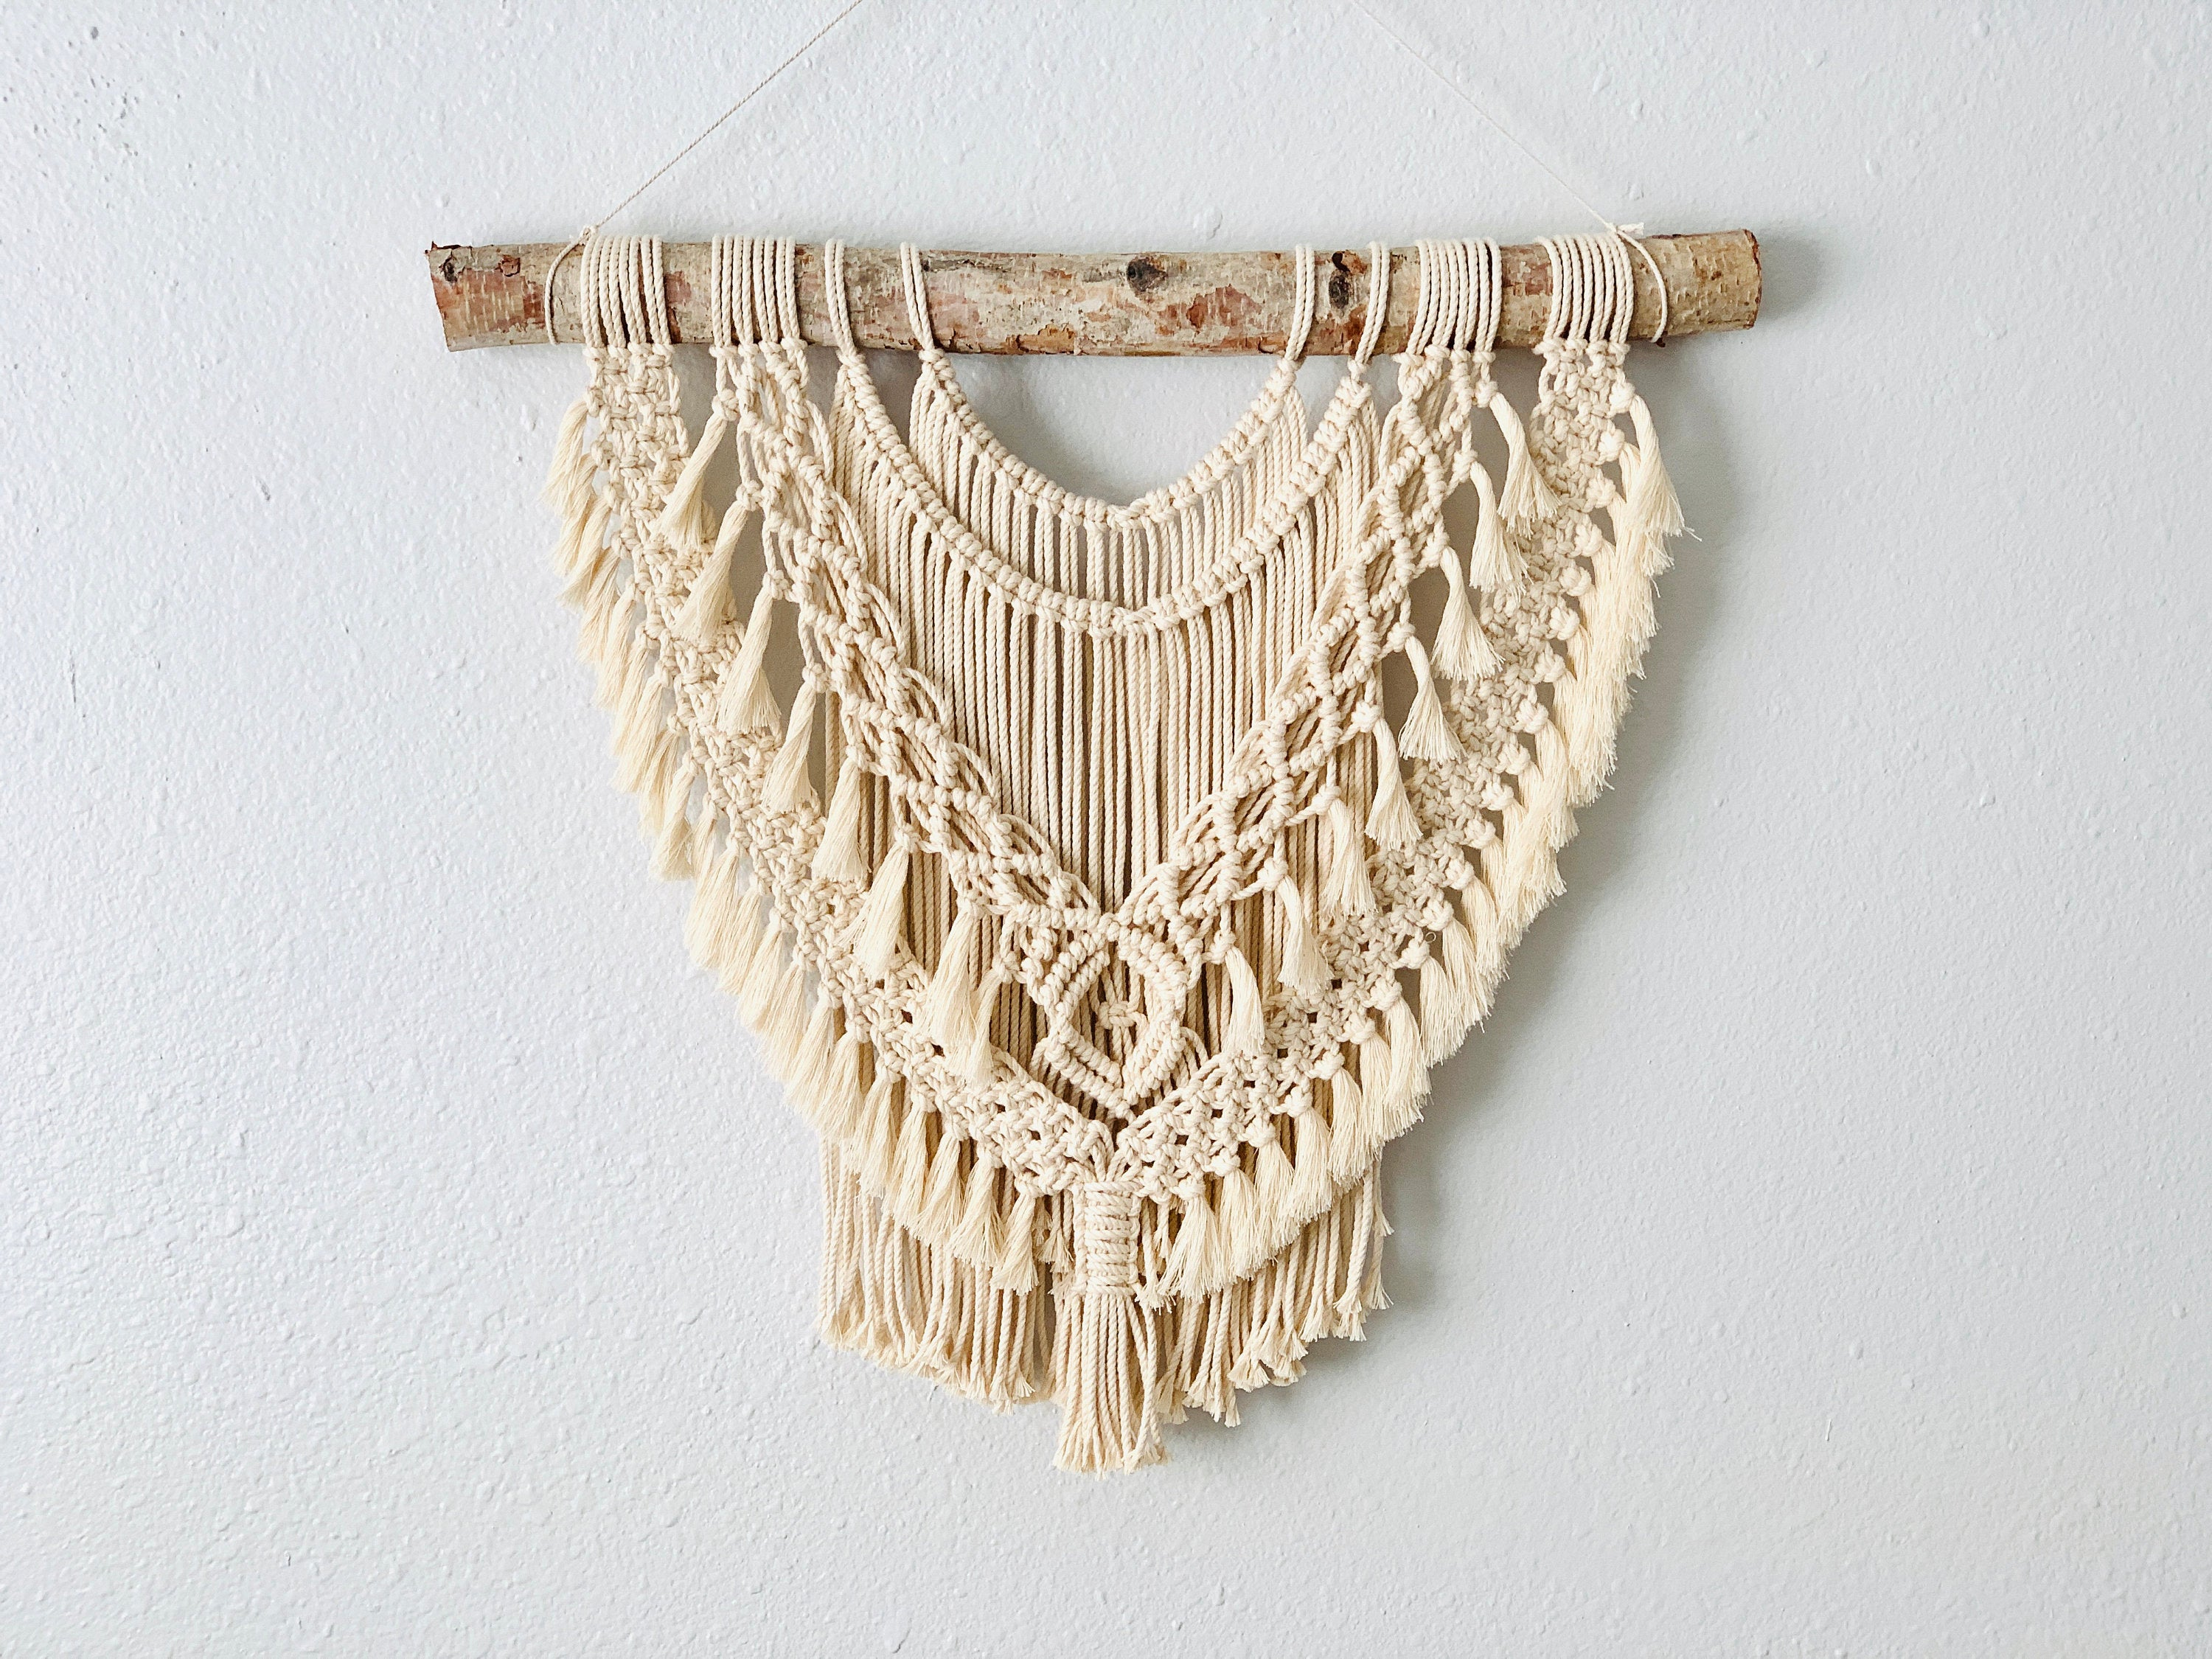 Driftwood Bohemian Macrame with Fringe, Large Beaded Macrame Wall Hanging, Boho Fiber Art